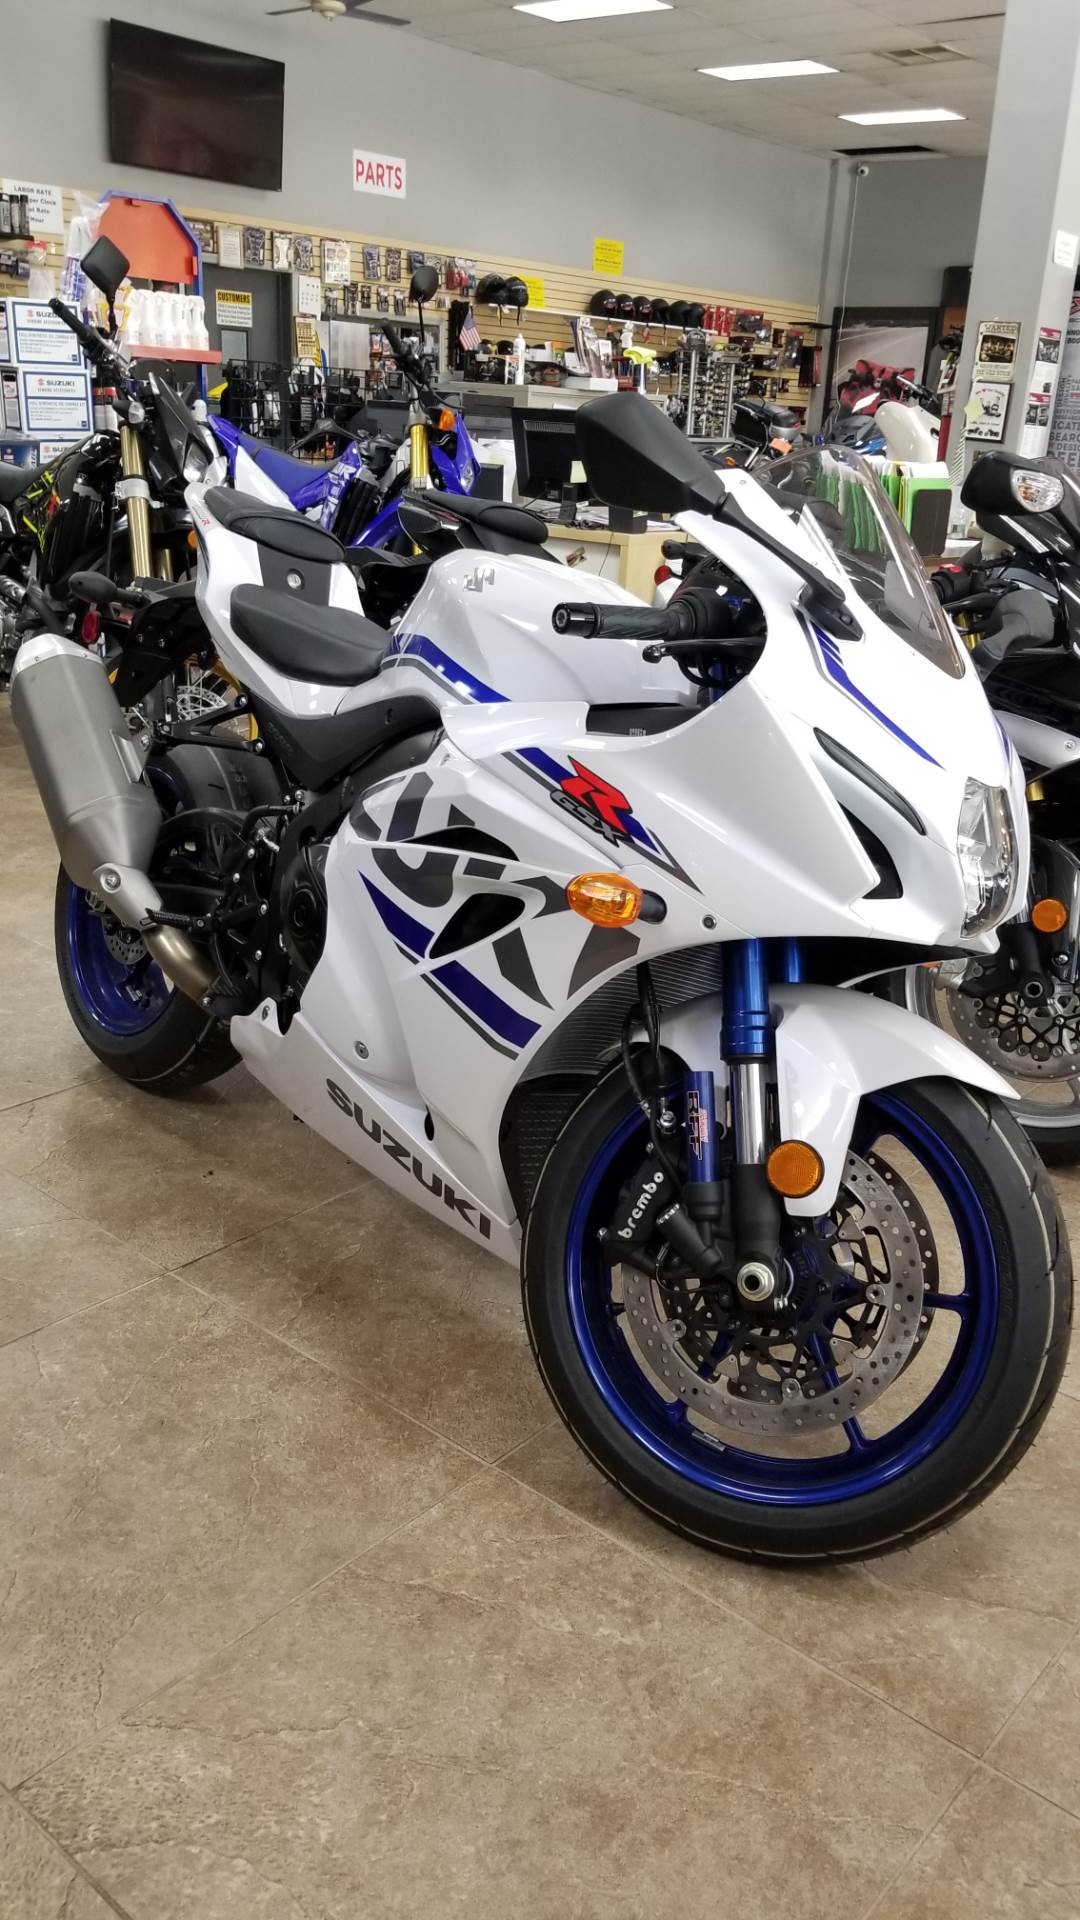 New 2018 Suzuki Gsx R1000r Motorcycles In Mineola Ny Stock Number